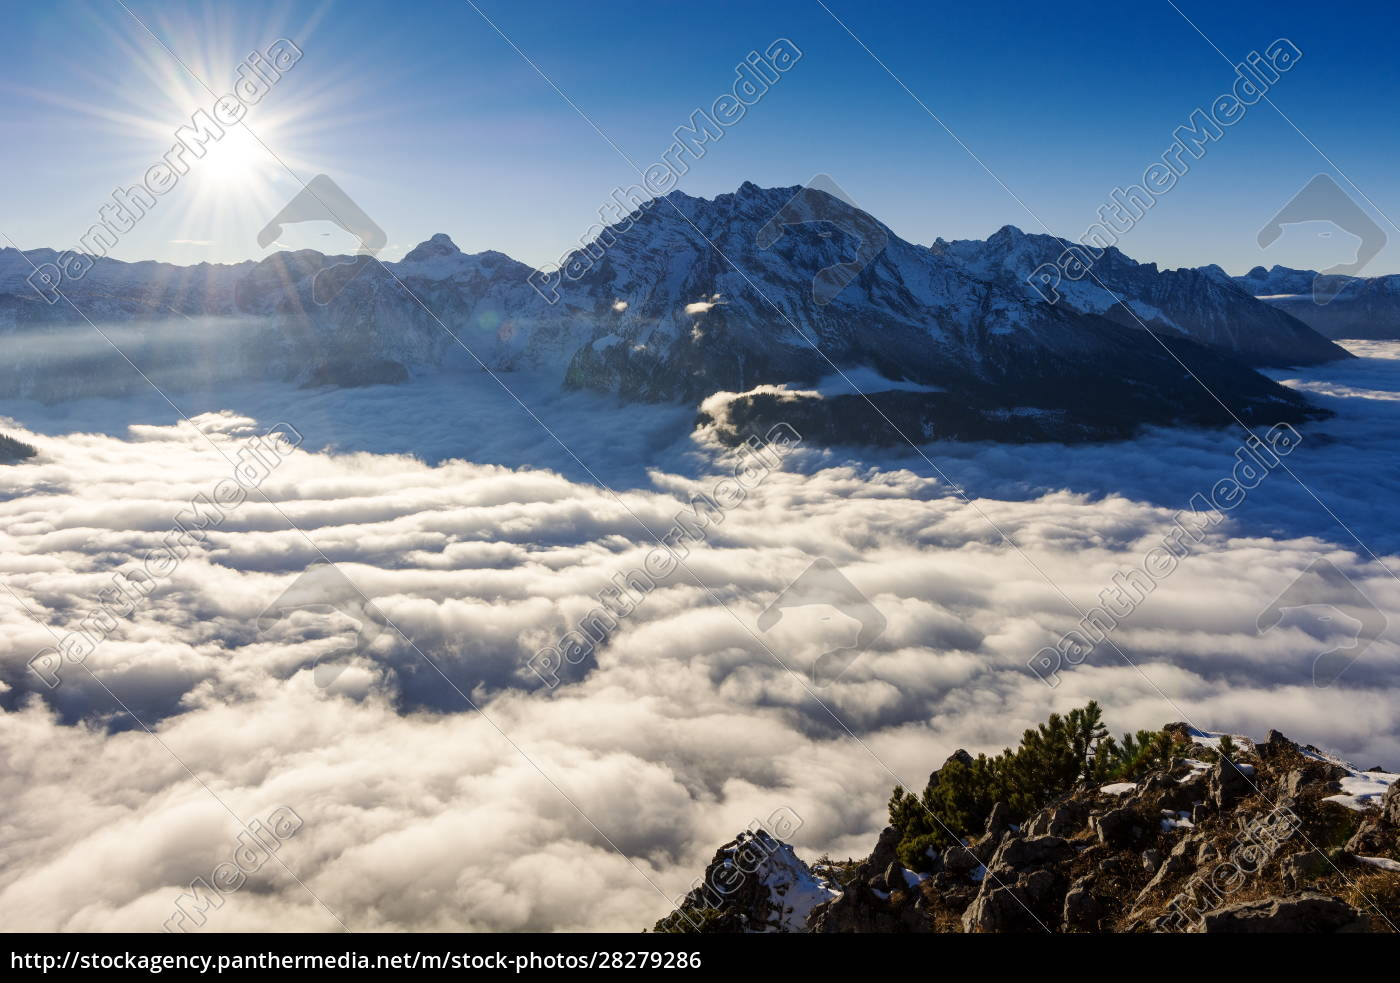 a, foggy, day, in, the, alps - 28279286